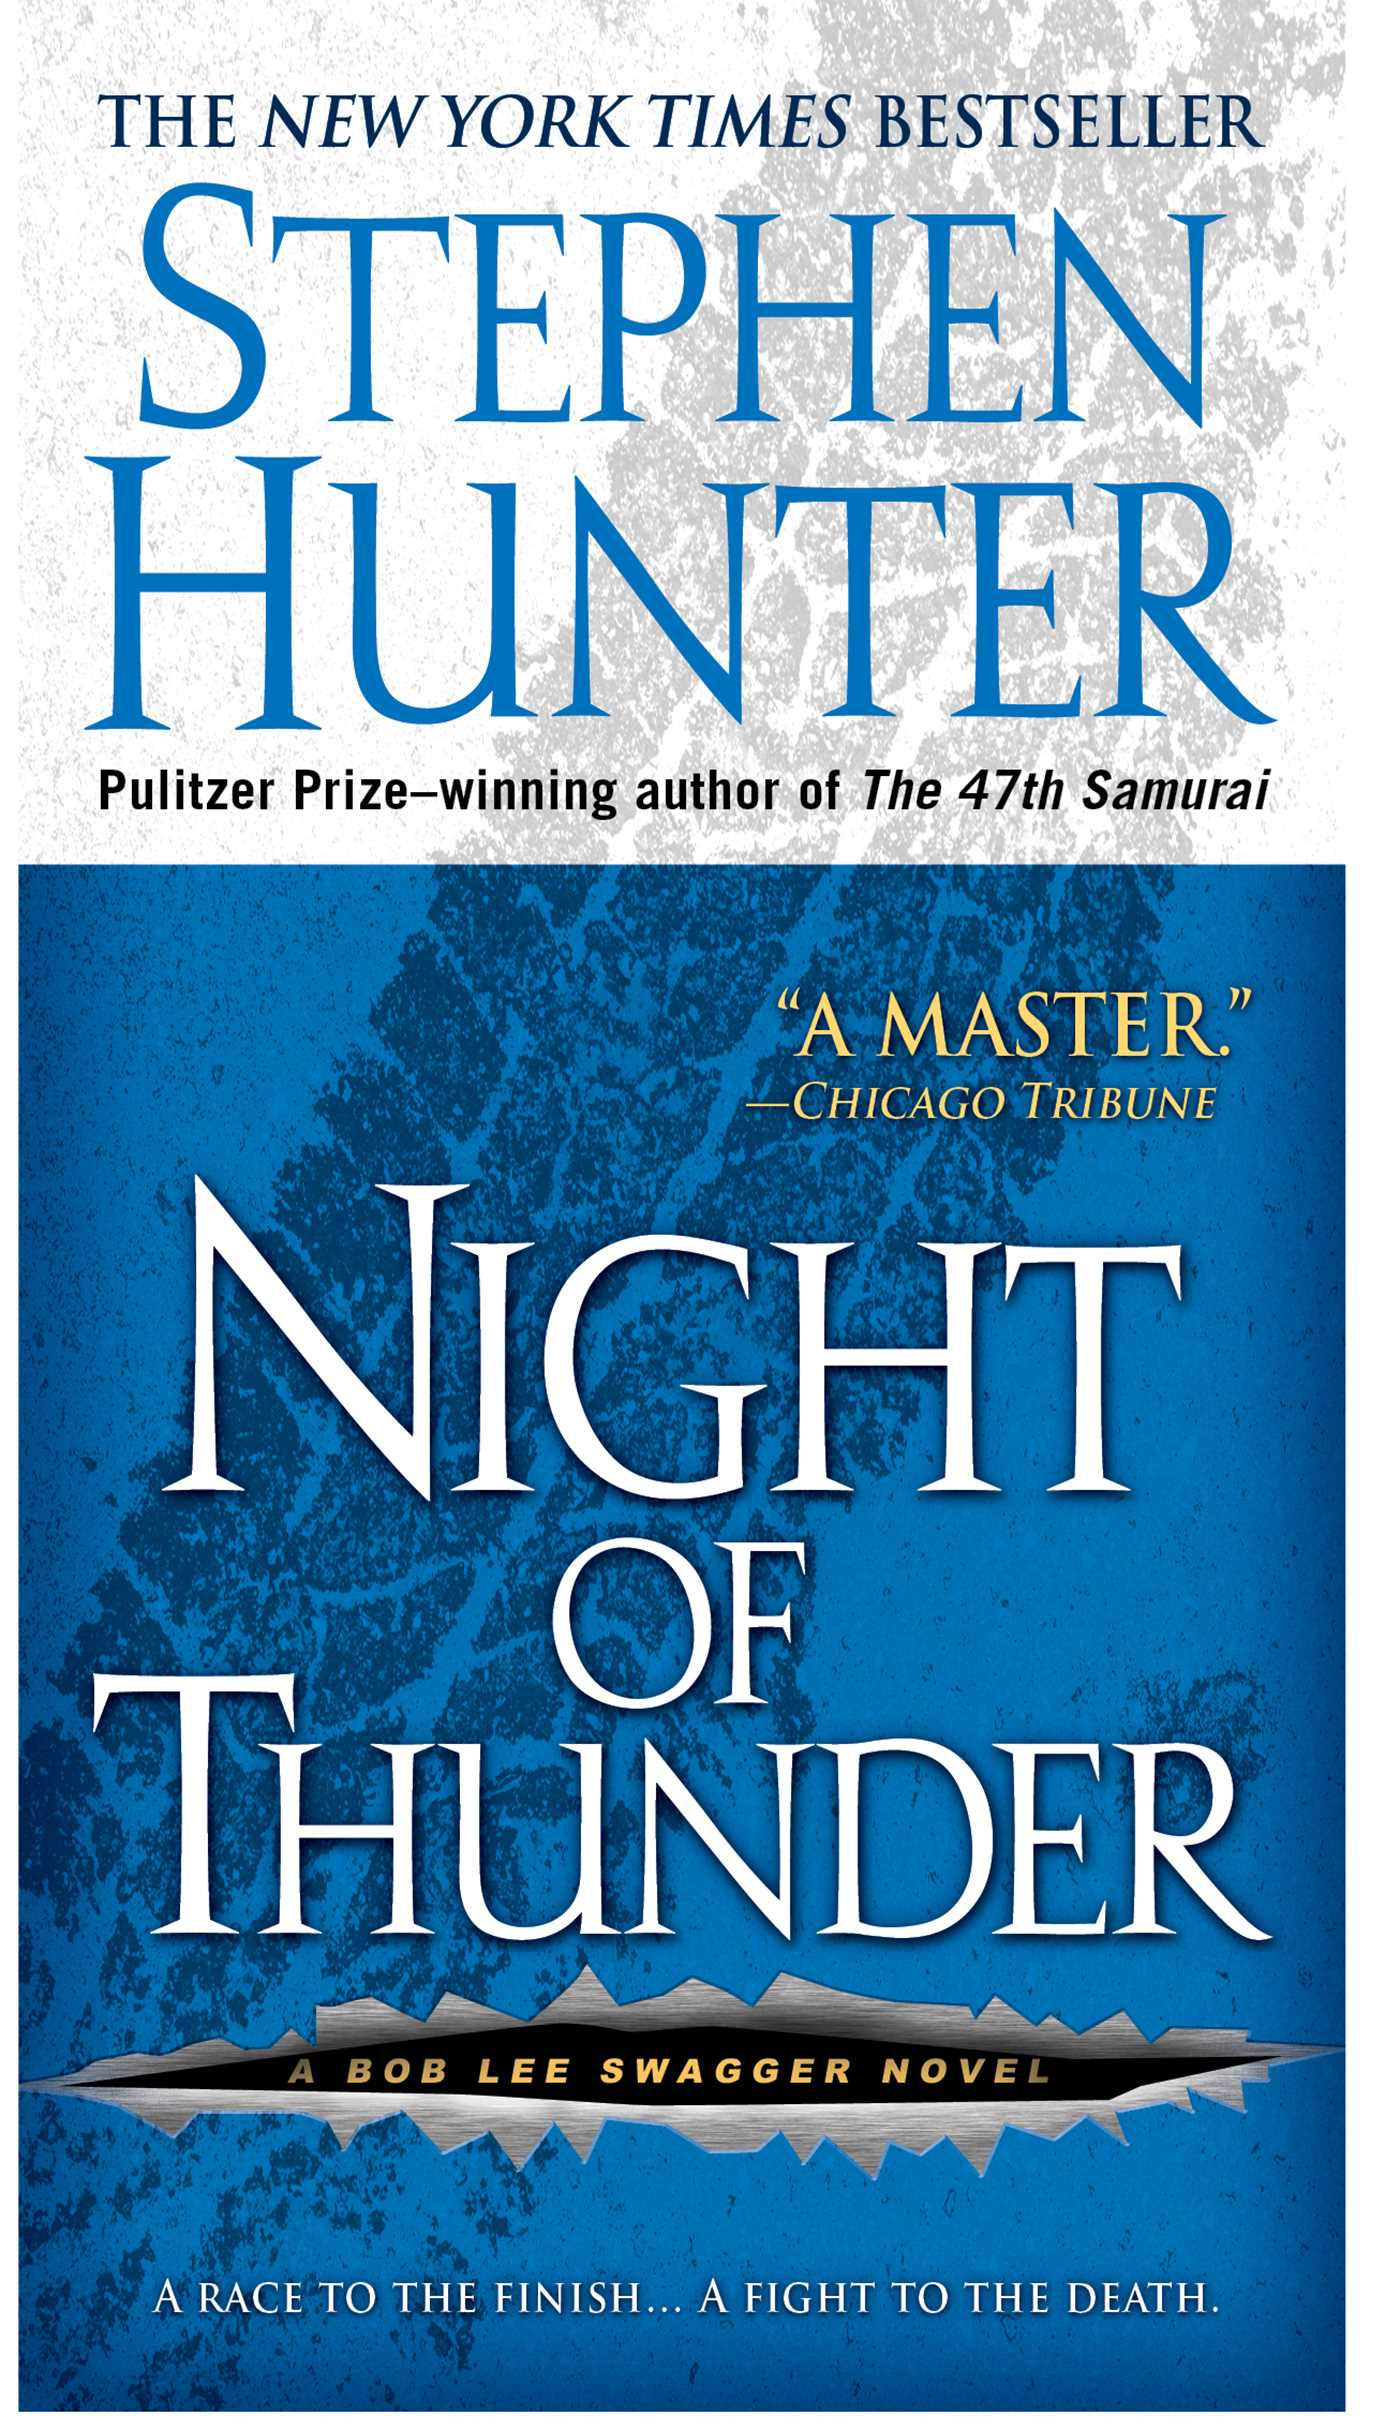 Night-of-thunder-9781416566151_hr